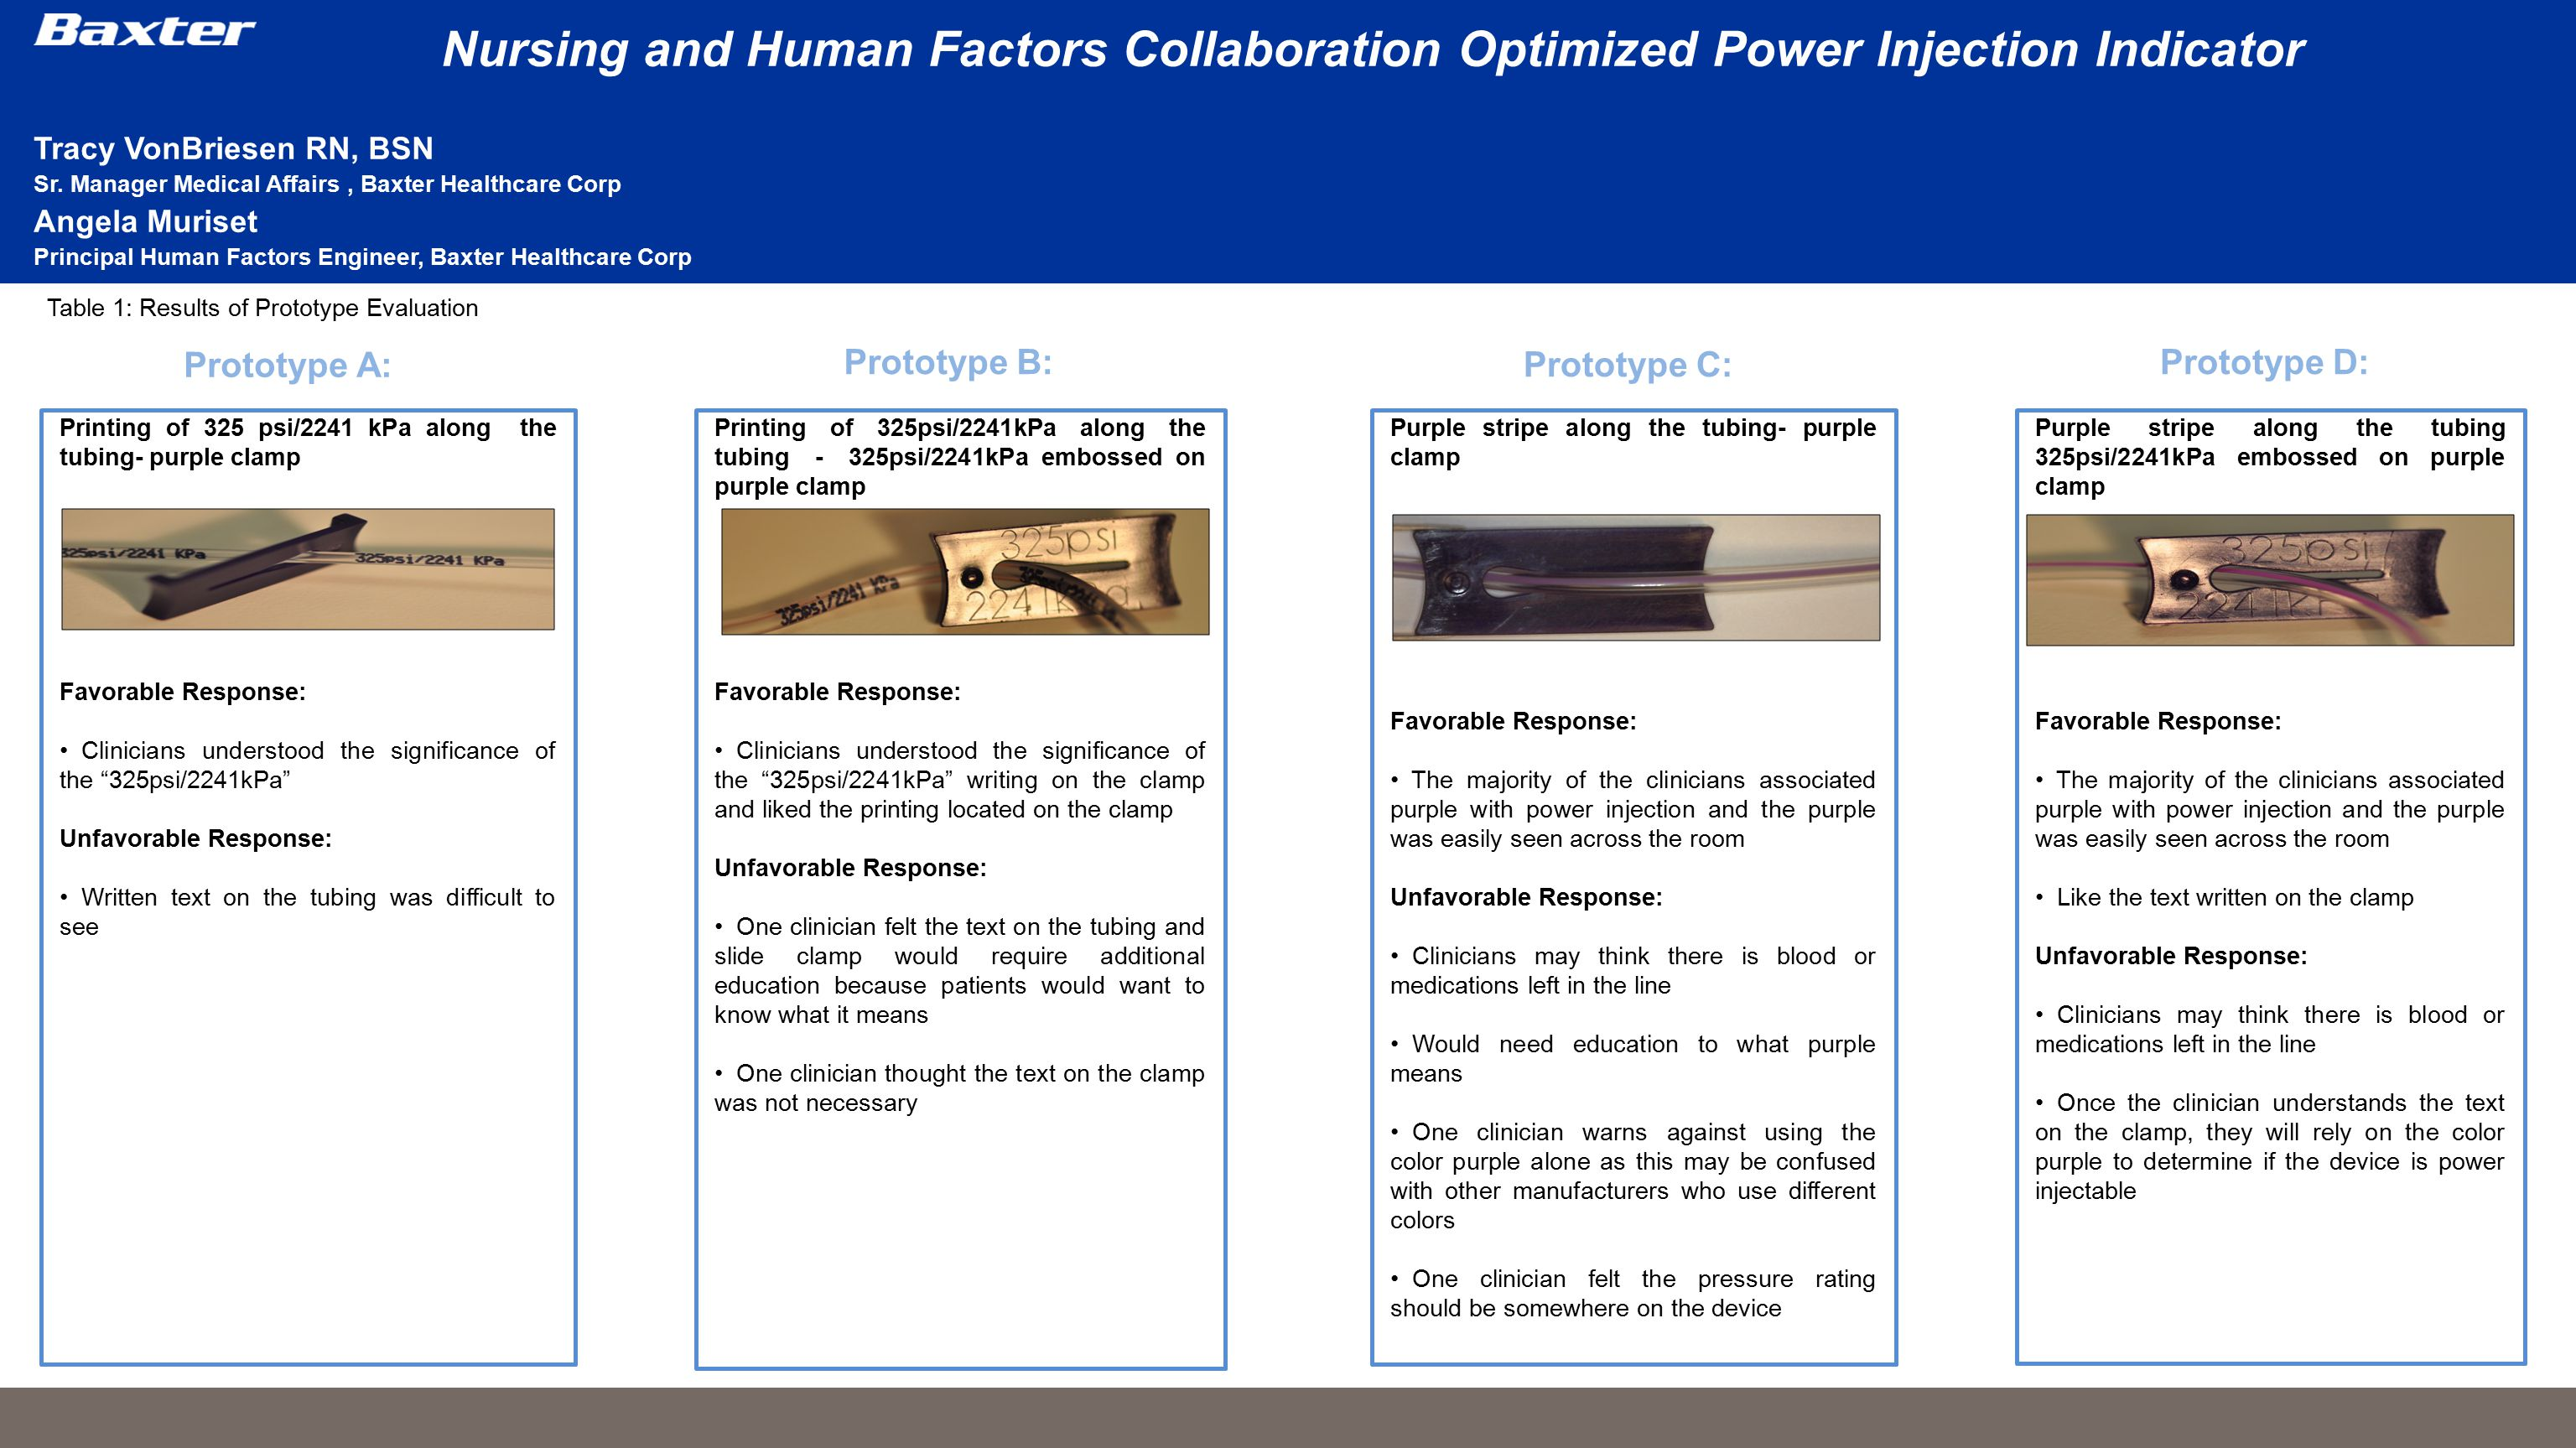 Nursing and Human Factors Collaboration Optimized Power Injection Indicator In 2006, The Joint Commission published a Sentinel Event Alert related to misconnections of medical devices in the clinical setting.